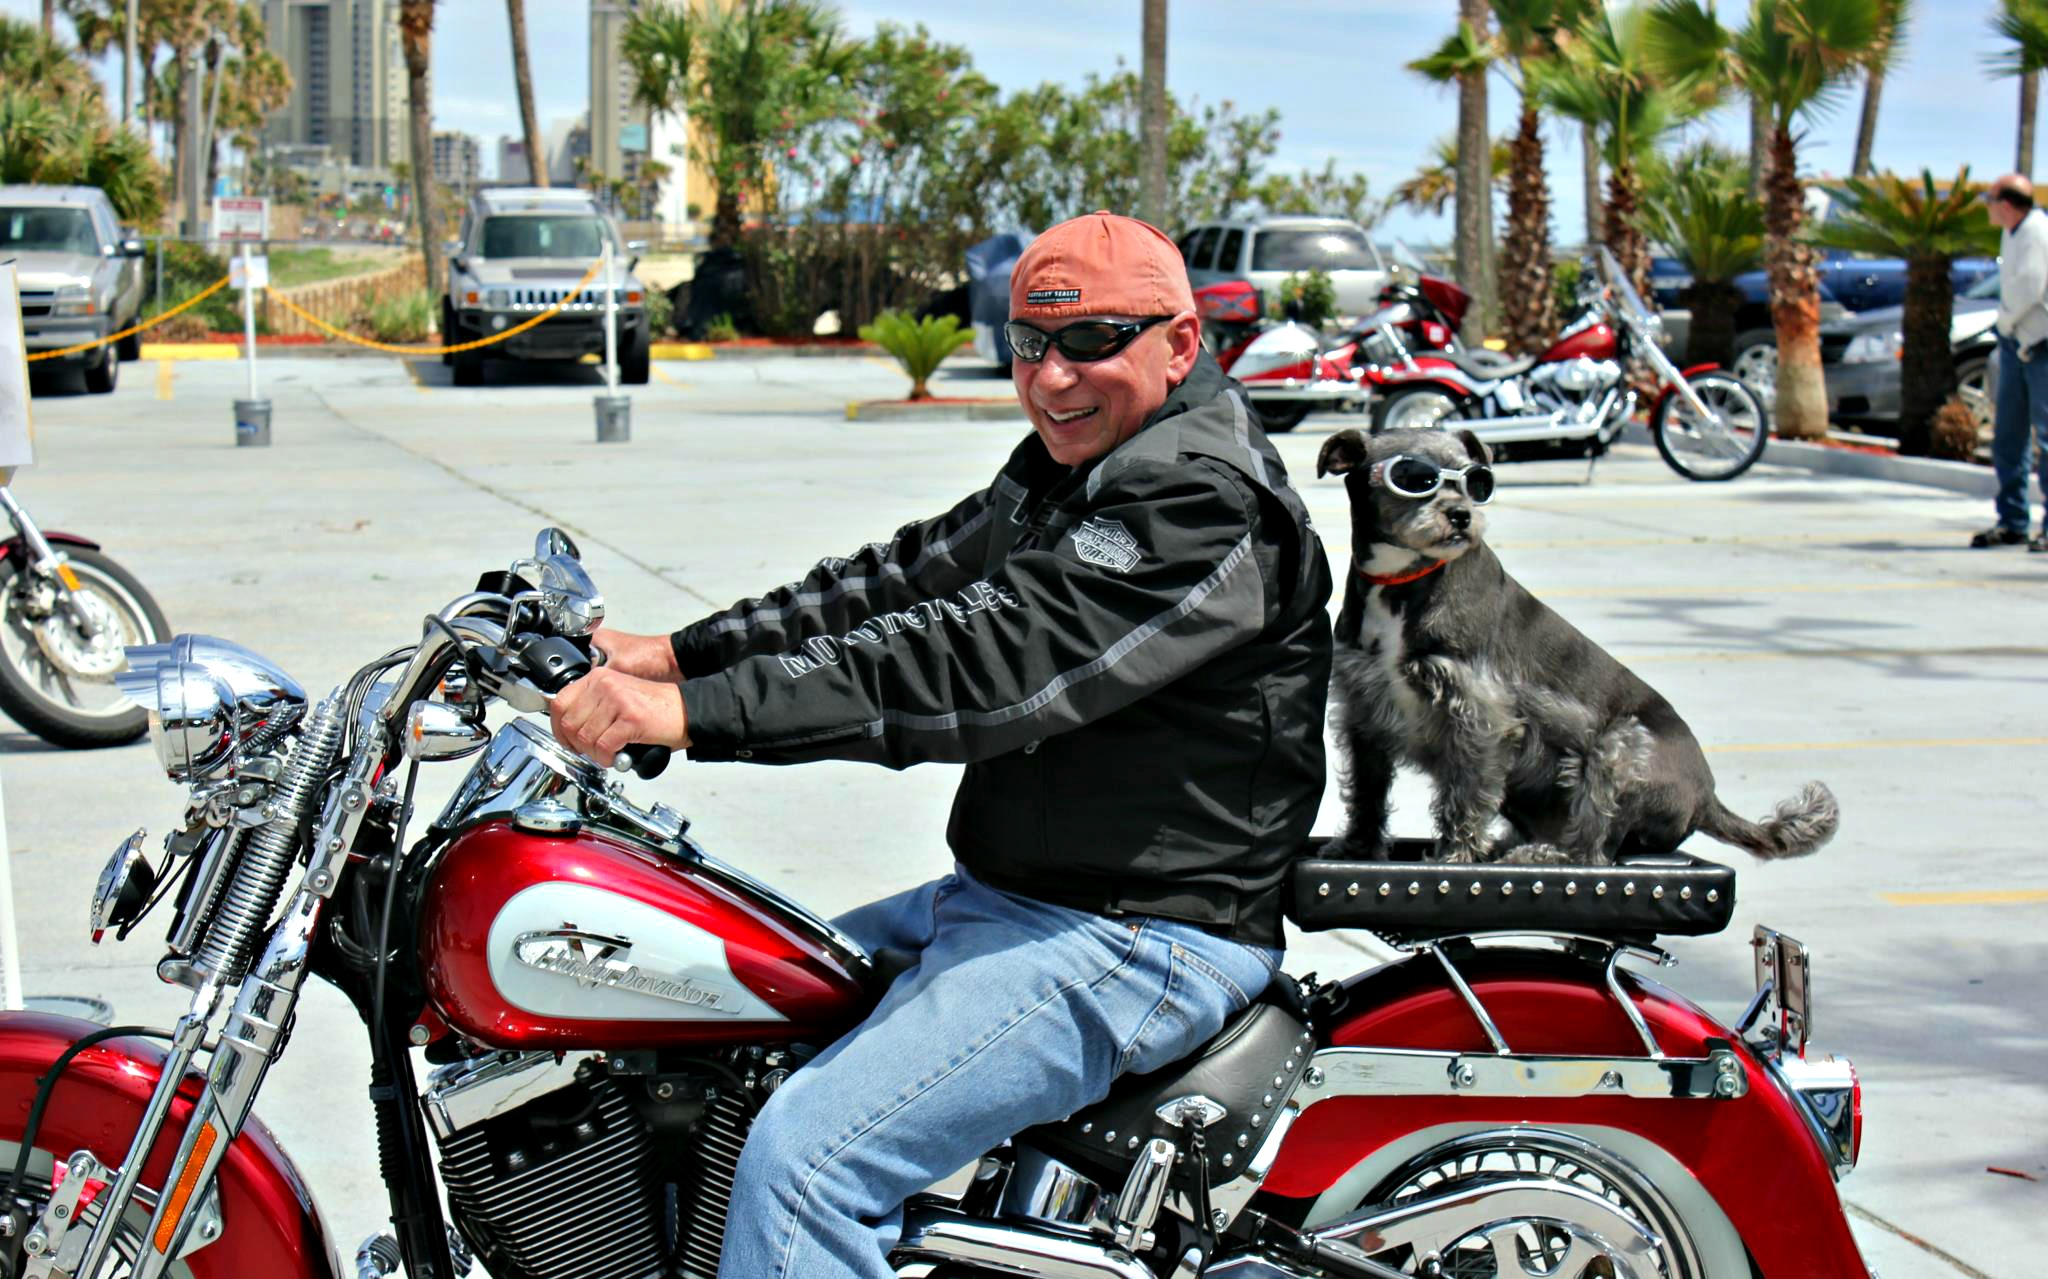 Thunder Beach motorcycle rally biker with his dog riding behind at The Chateau in Panama City Beach